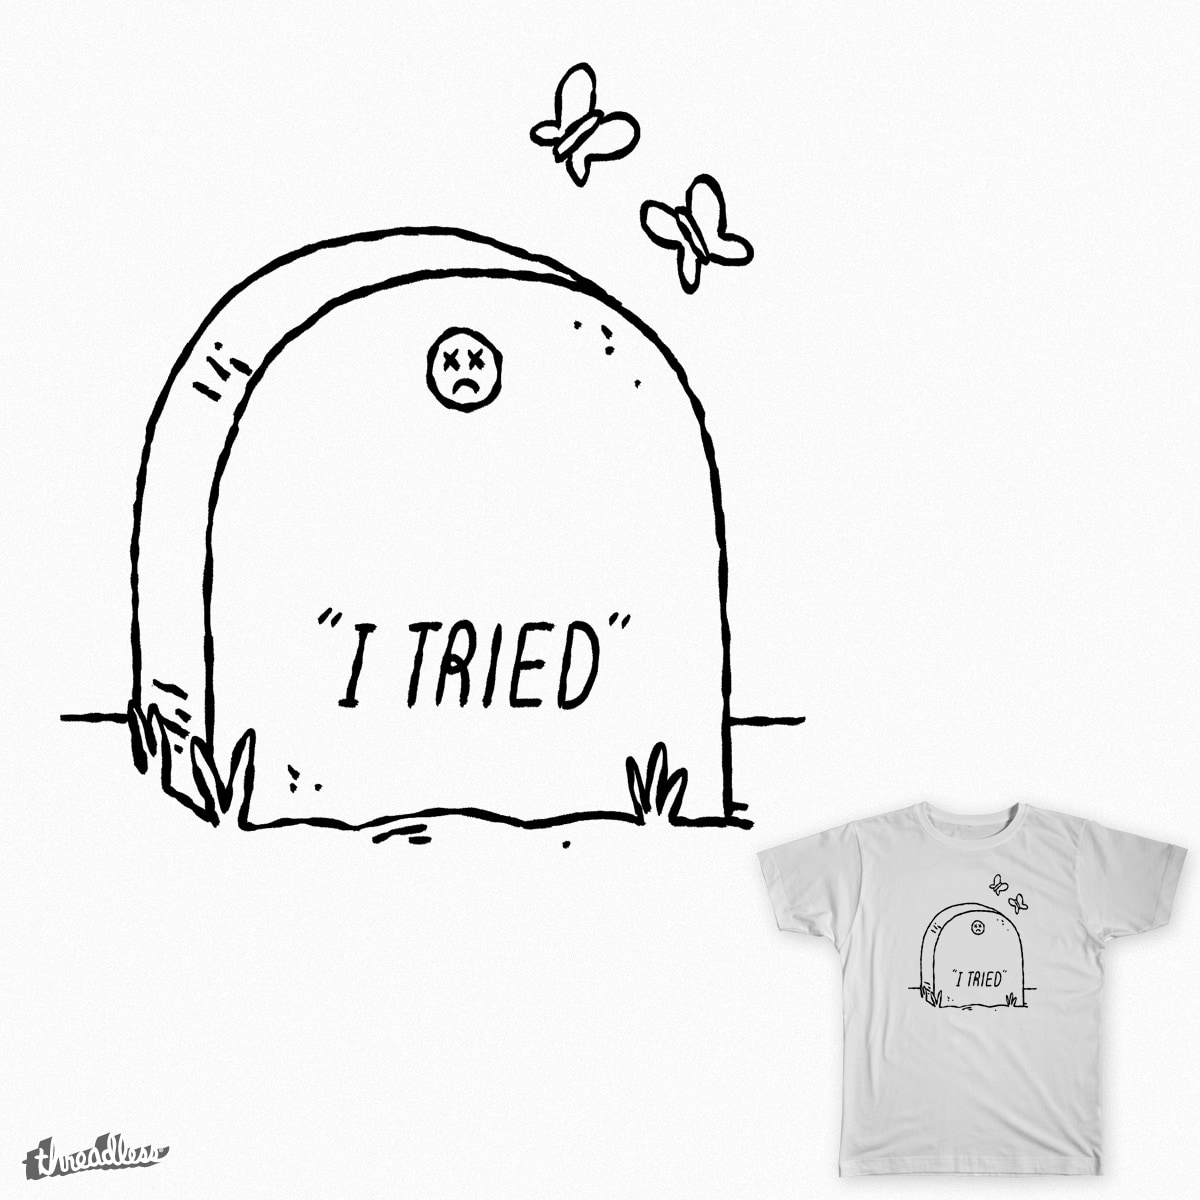 die trying by mike bautista on Threadless